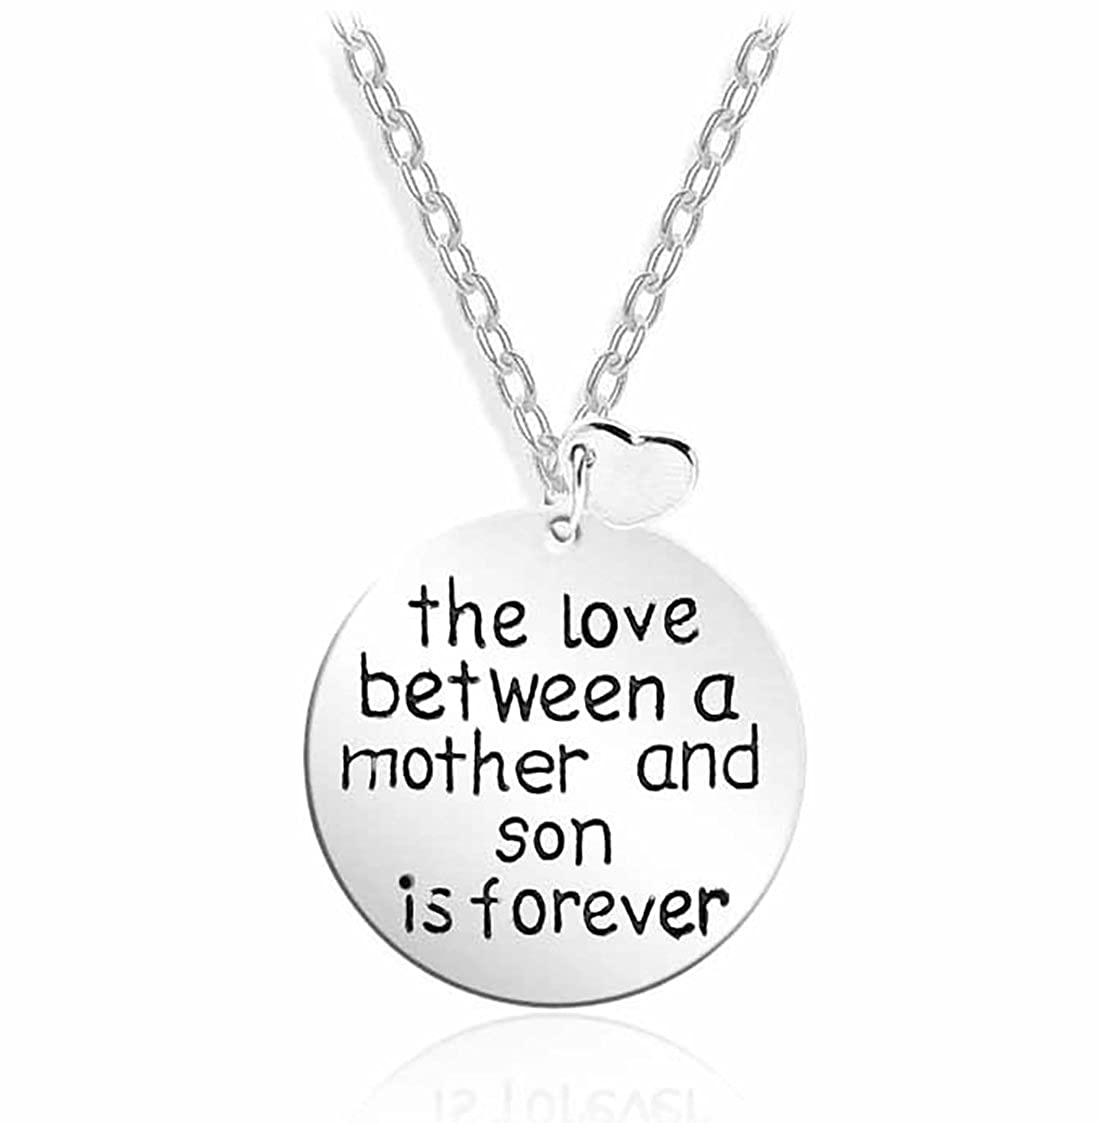 Family Dog Tag Necklace,Dad Mom Daughter Son The Love Between is Forever Charm Pendant Necklace Love Gift for Women Men Girls Boys SwanElegant